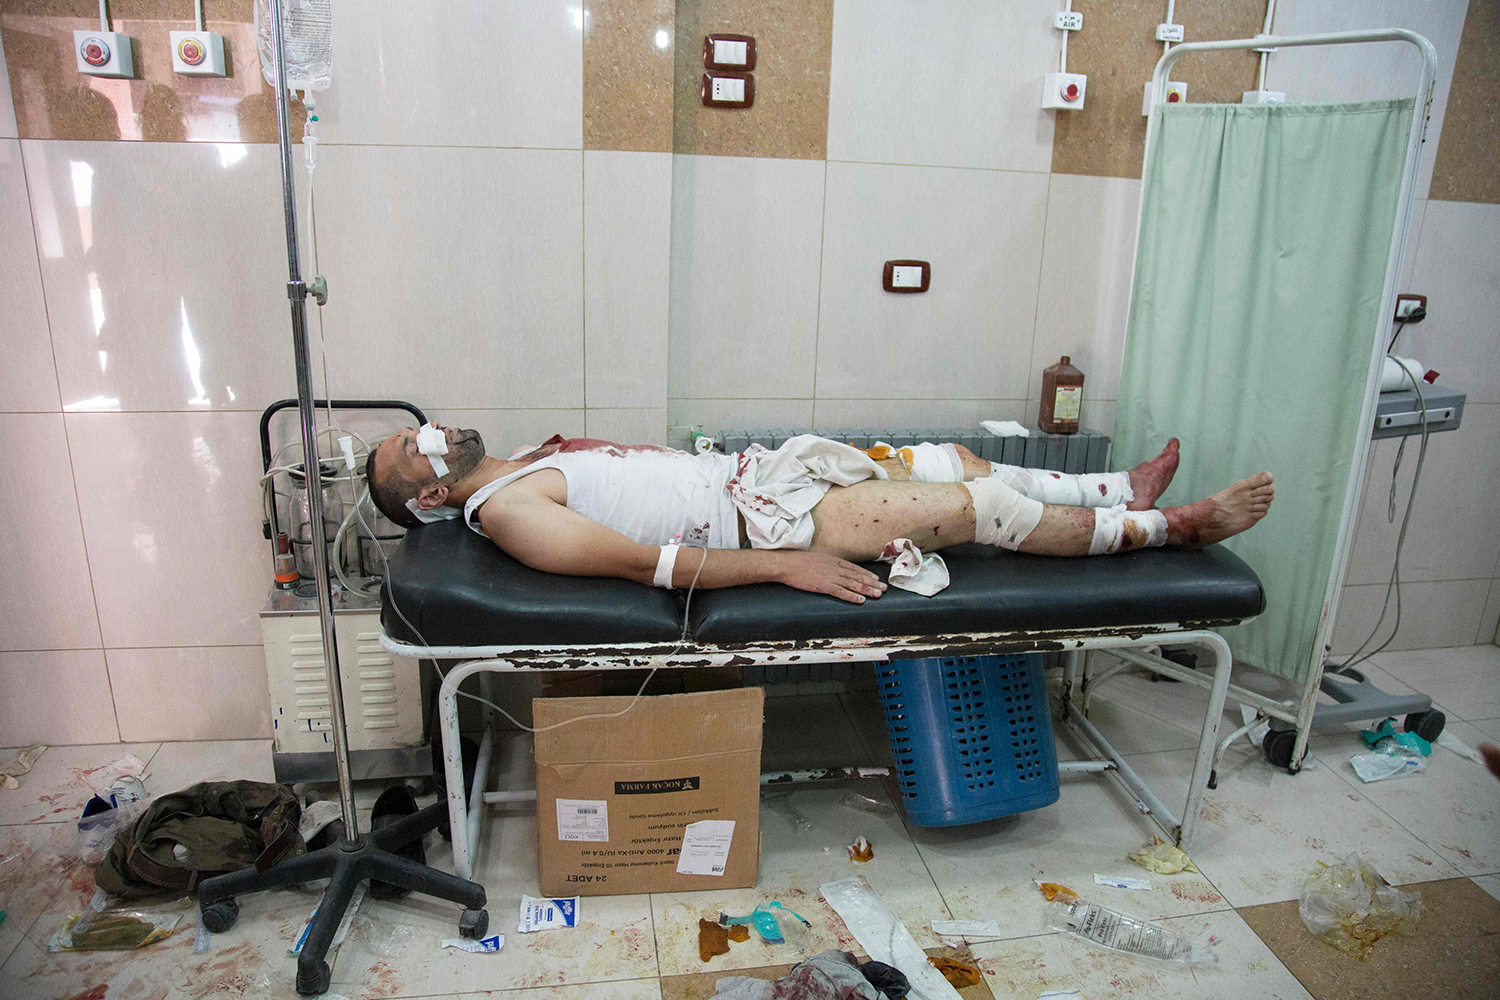 TOPSHOT - A Syrian man lays on a hospital bed at a make-shift hospital following air strikes on rebel-held eastern areas of Aleppo on September 24, 2016. Heavy Syrian and Russian air strikes on rebel-held eastern areas of Aleppo city killed at least 25 civilians on Saturday, the Britain-based Syrian Observatory for Human Rights said, overwhelming doctors and rescue workers. / AFP PHOTO / KARAM AL-MASRI / TT / kod 444